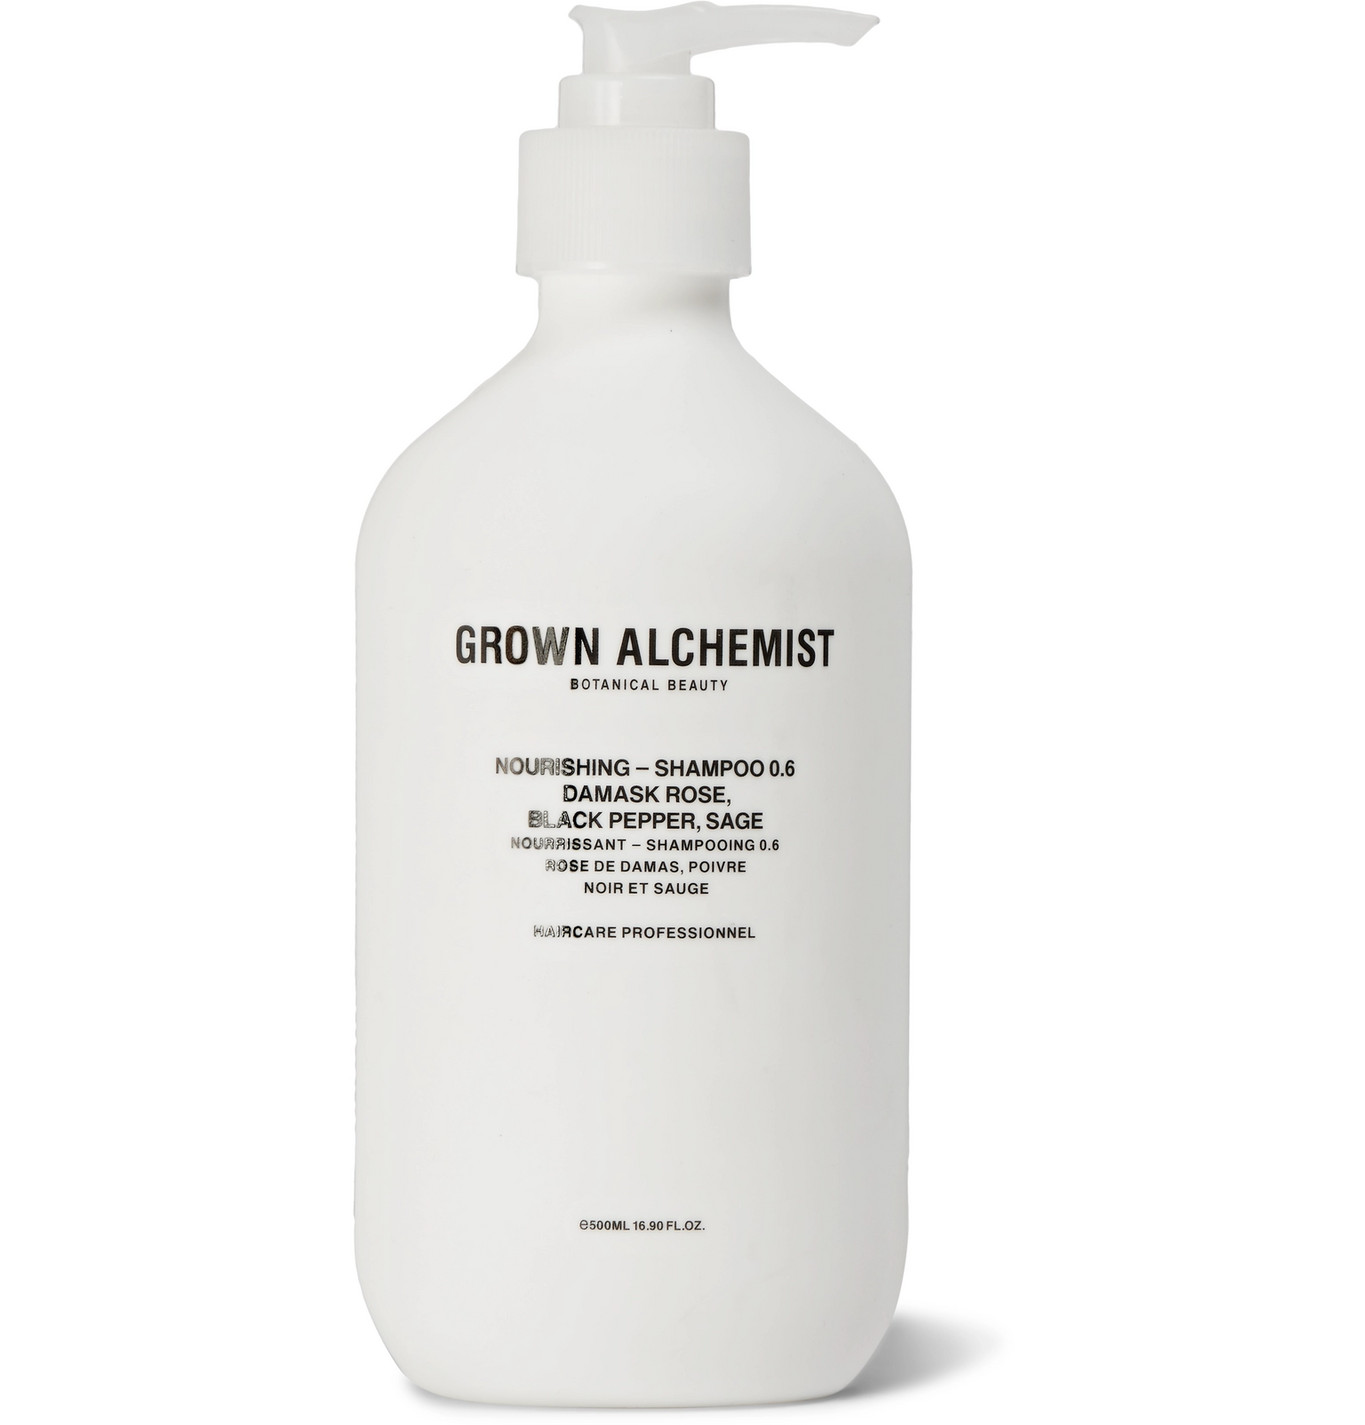 Grown Alchemist Nourishing Shampoo Damask Rose, Black Pepper, Sage 500ml